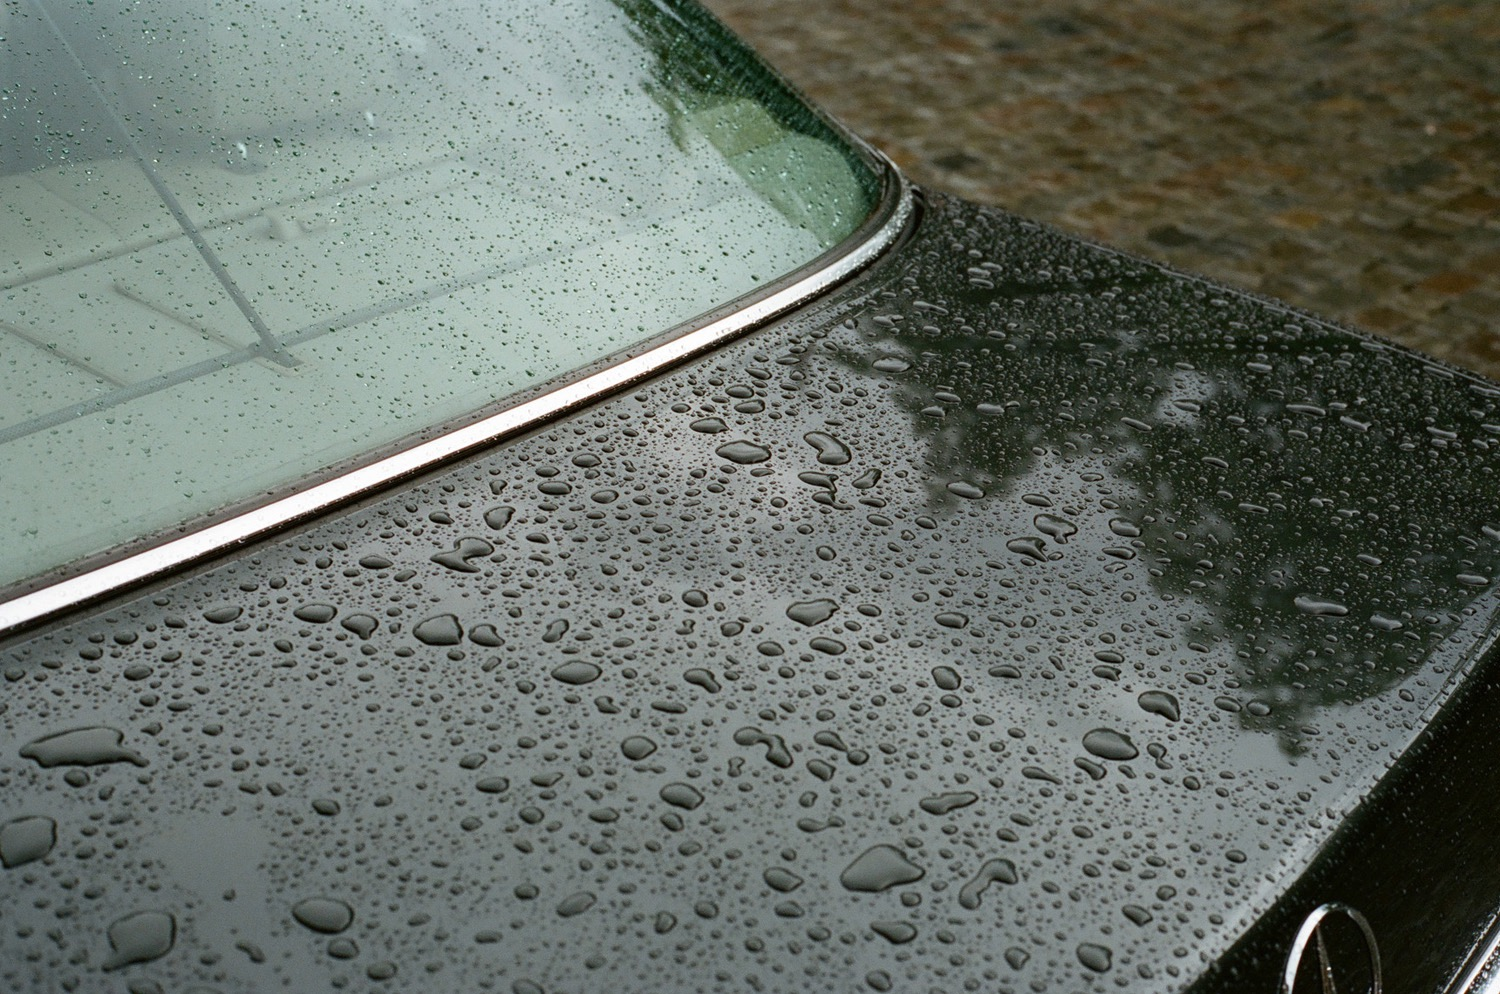 photo, photos, photography, photographer, photographers, car, cars, rain, raindrops, cloudy, cloud, dark, gloom